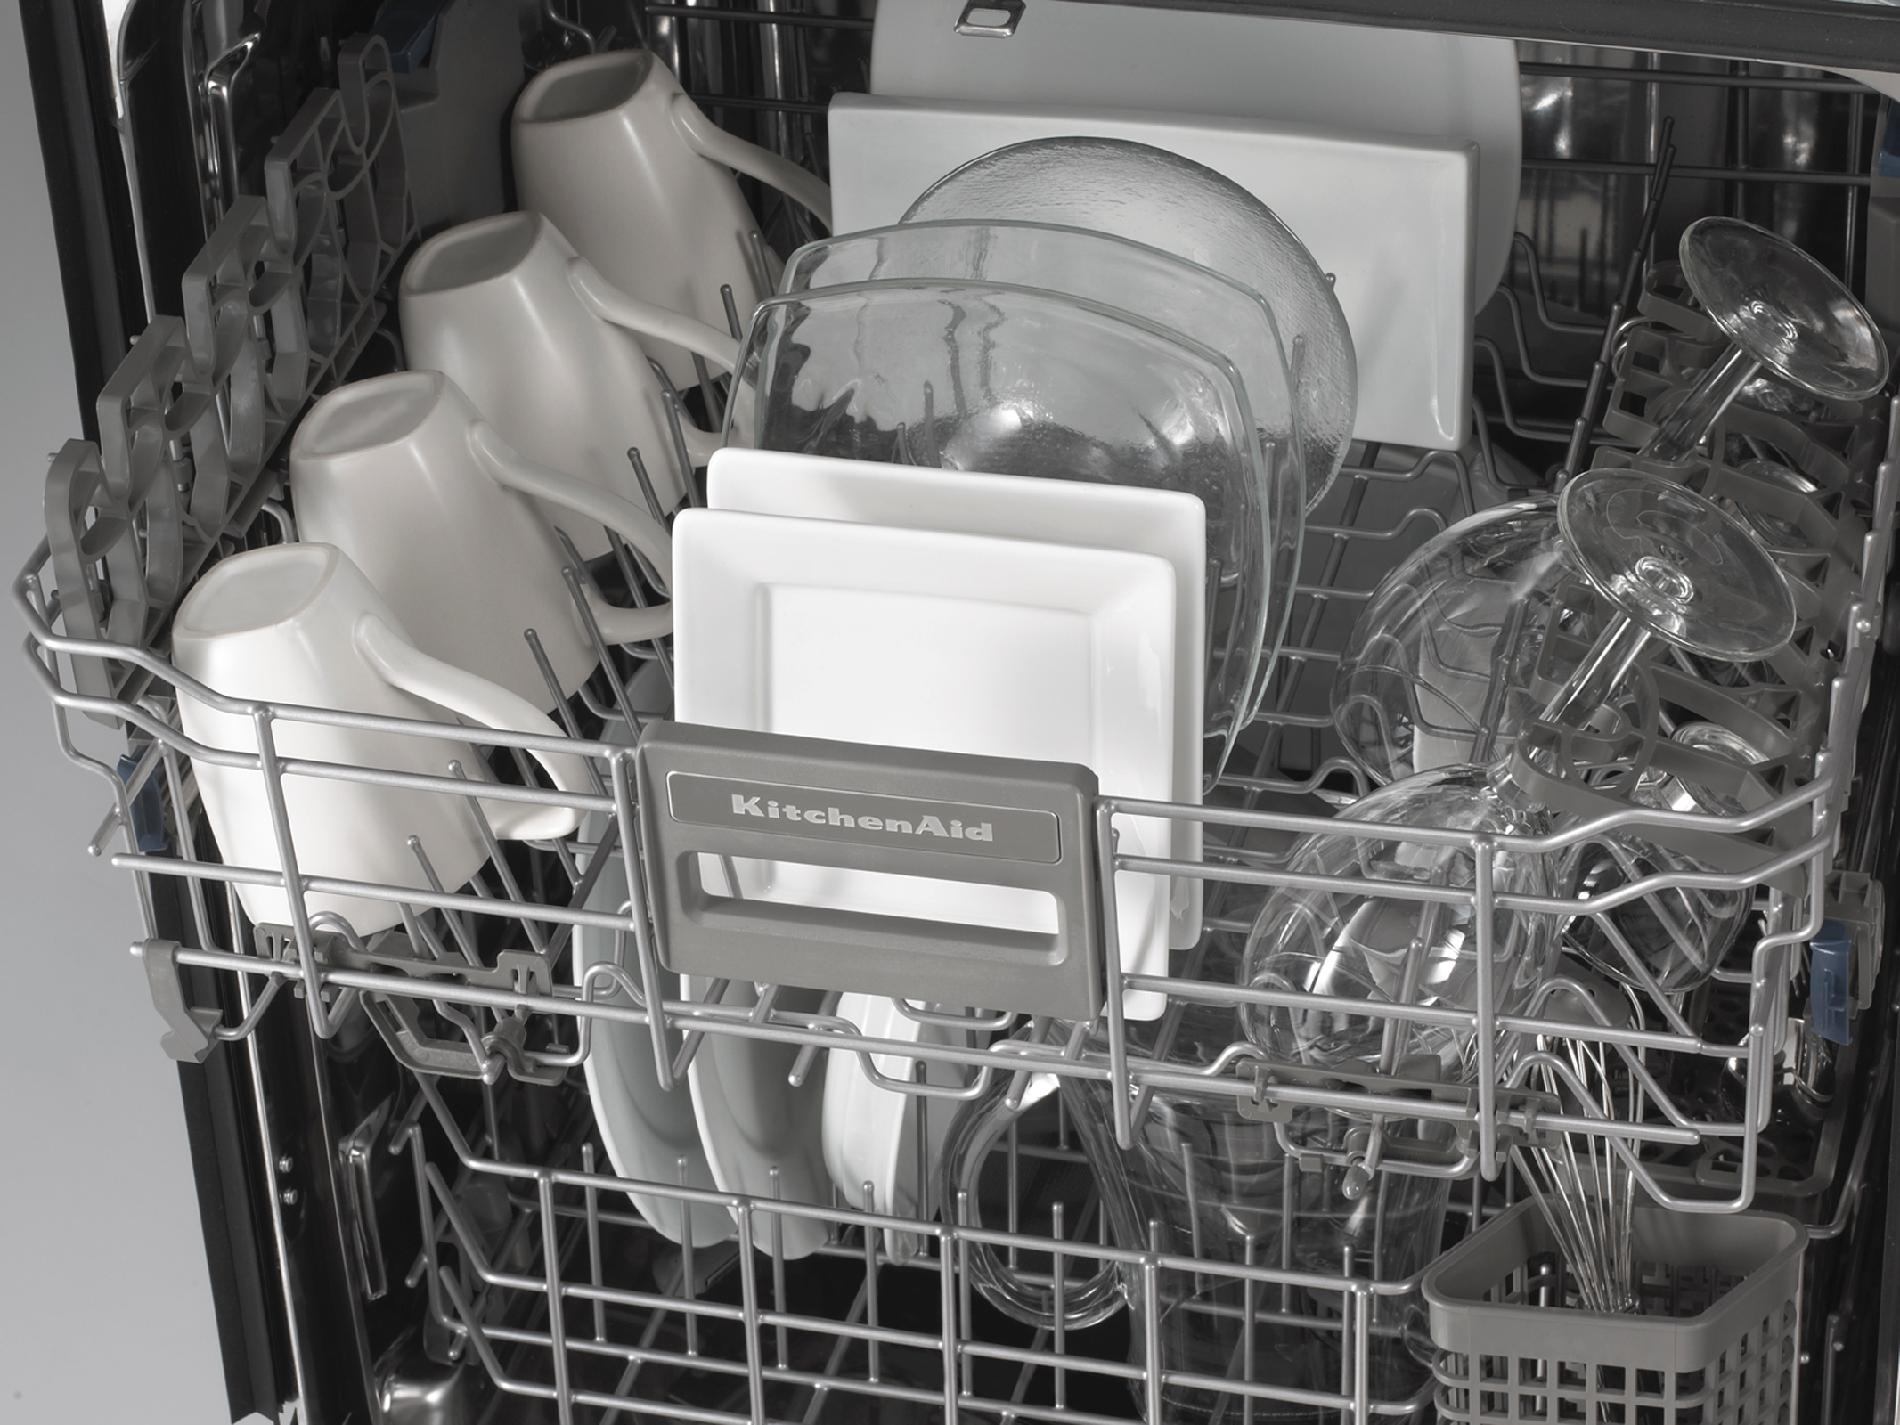 "KitchenAid 24"" Superba® EQ Built-In Dishwasher - White"